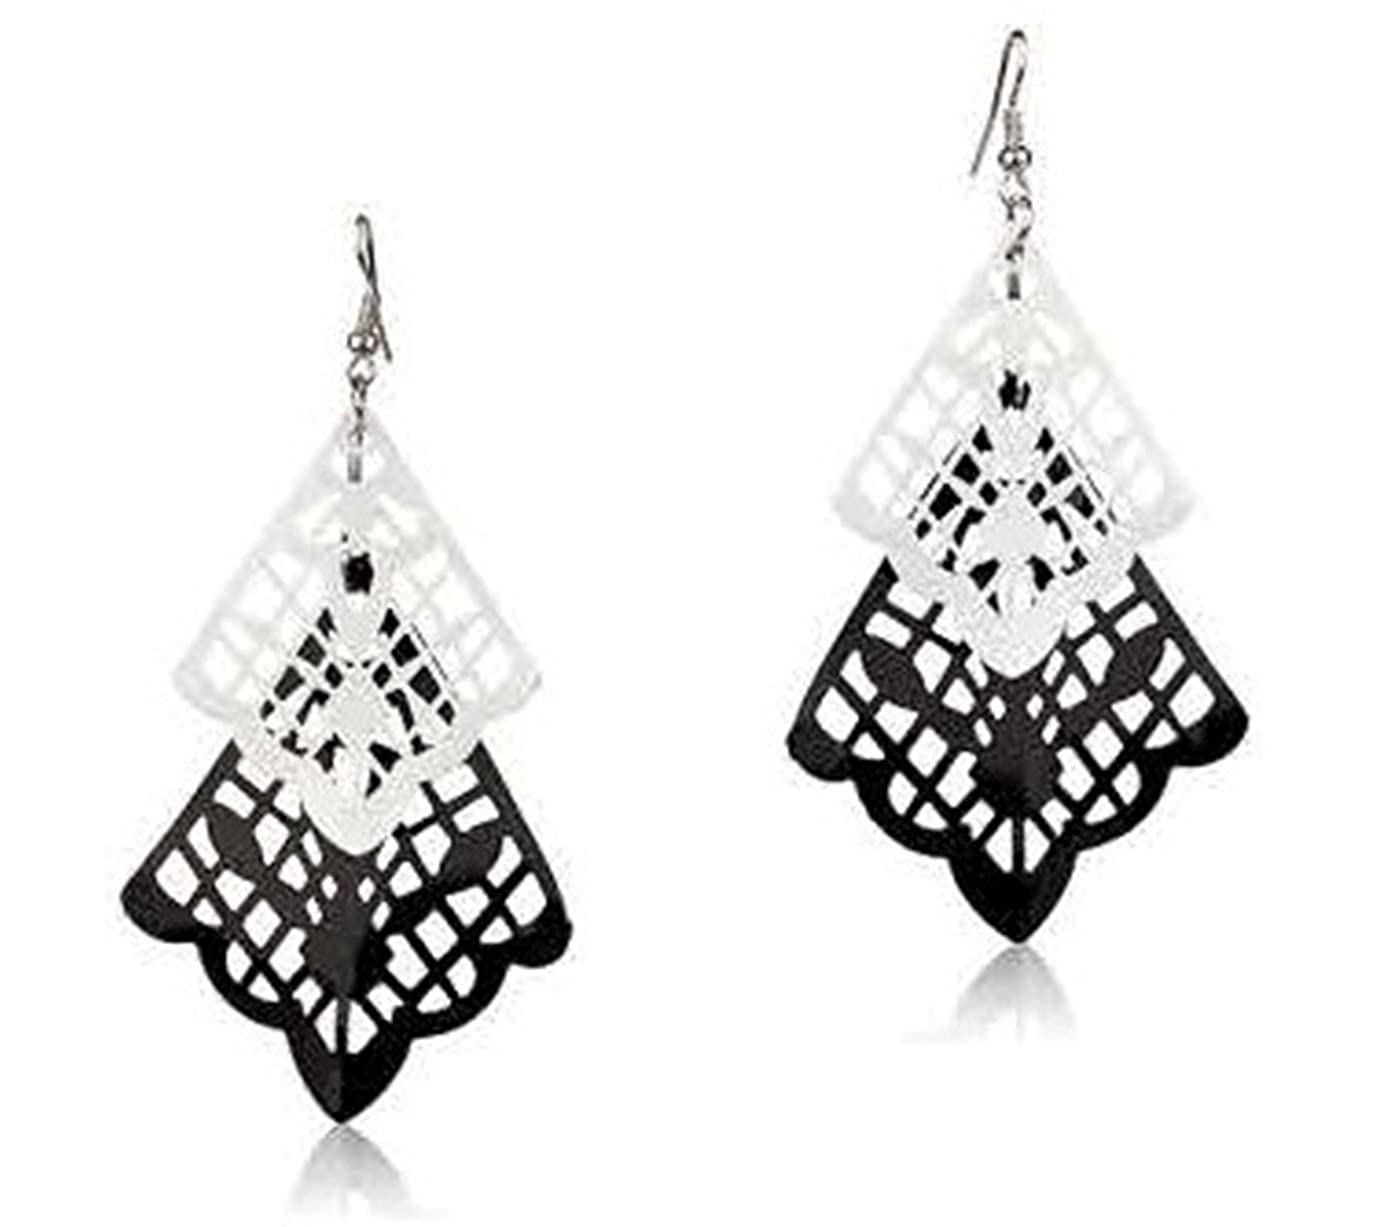 Surgical Stainless Steel Women-Girls Black /& White Retro Style Dangle Cubic Zirconia Hypoallergenic Earrings